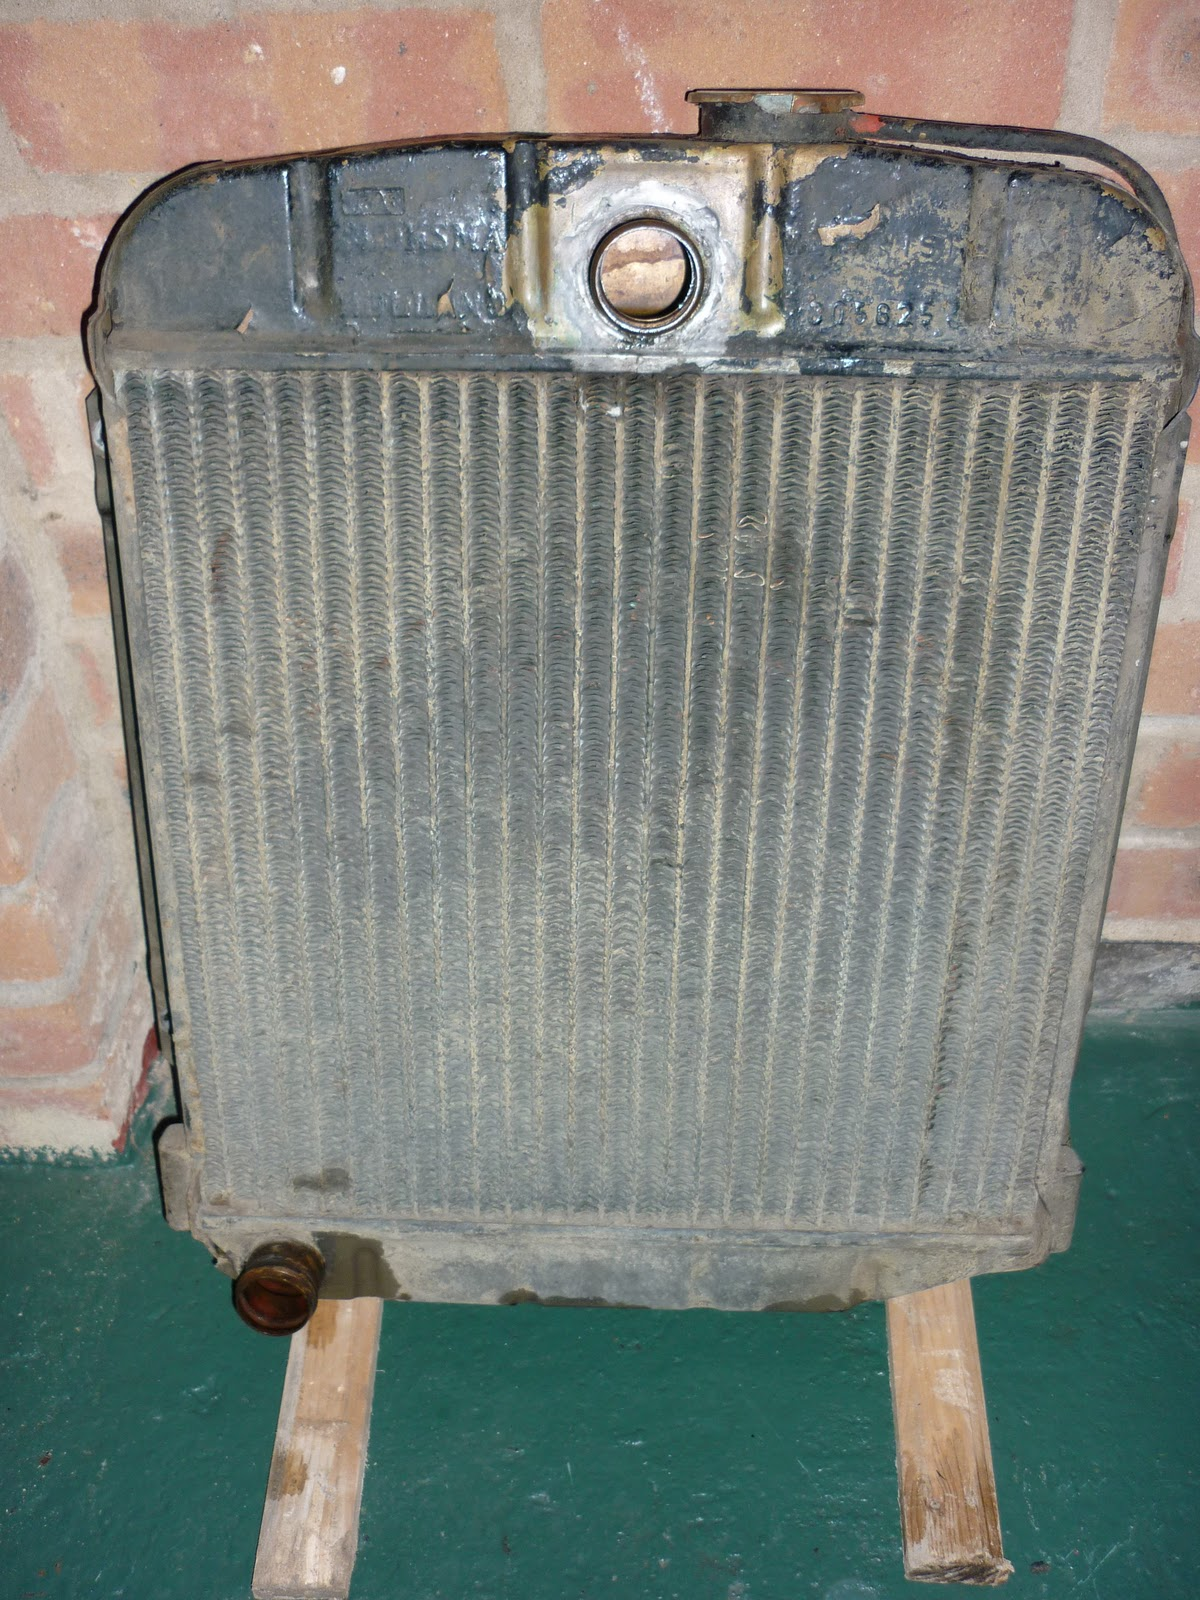 Radiator Removal And Restoration M38a1 Willys Jeep Electrical Wiring Once The Was Out A Quick Shake Of It Revealed That There Lot Debris Floating Around In Core Not Good For Or